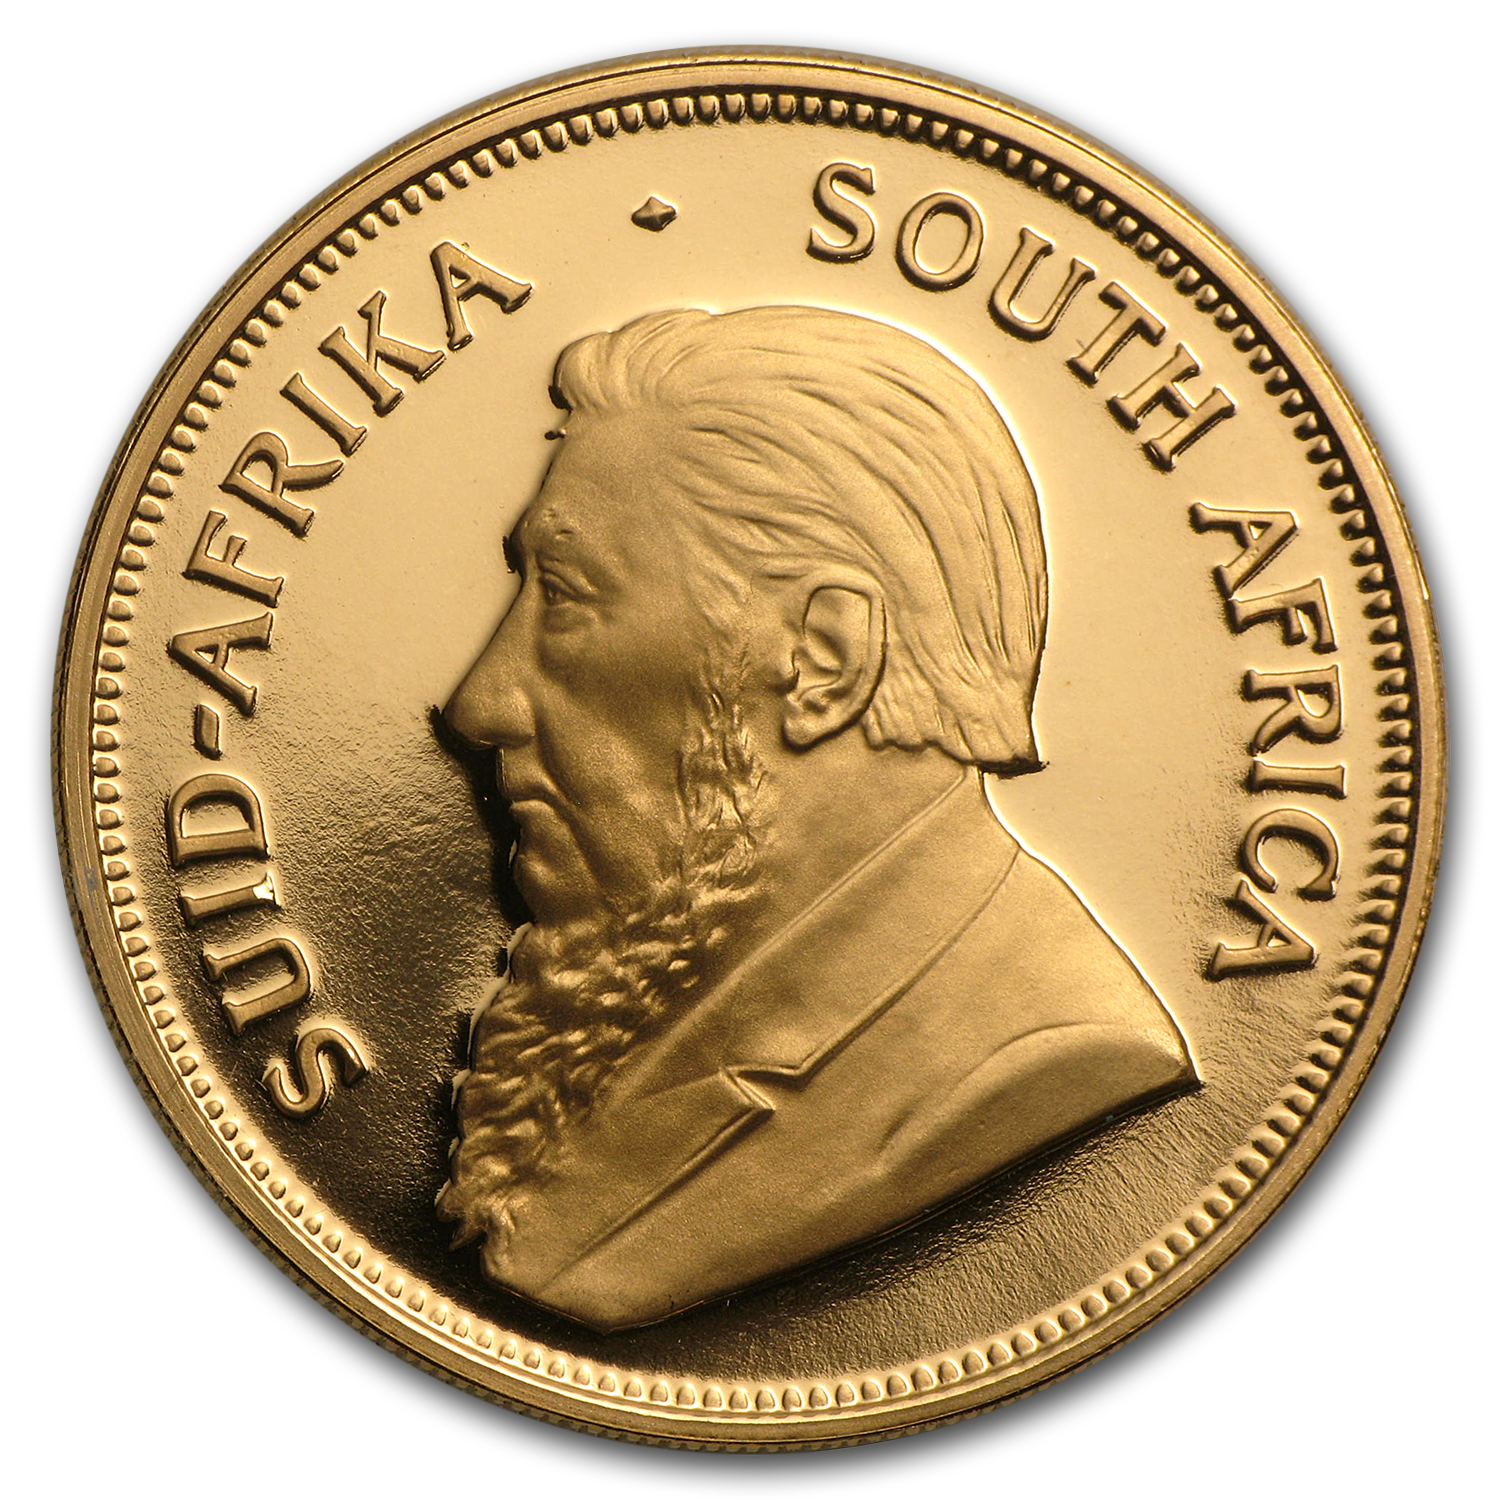 1995 South Africa 1 oz Gold Krugerrand